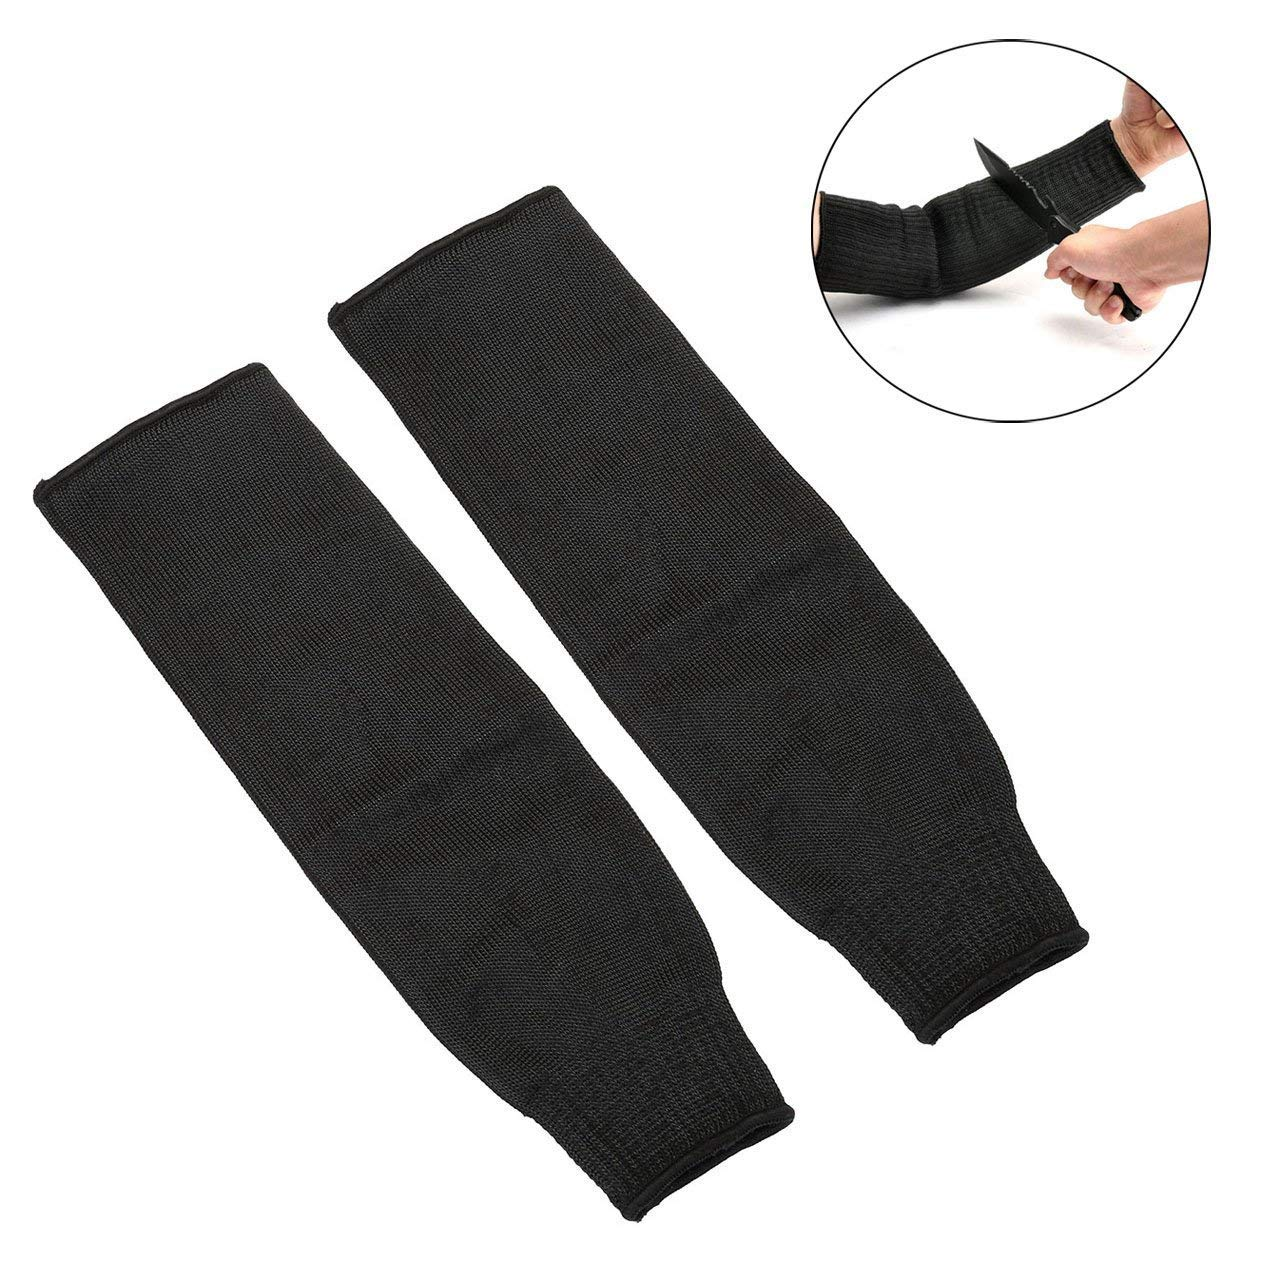 CozyCabin Cut Resistant Sleeves Steel Wire Arm Protection Sleeves Outdoor Self-defense Arm Guard